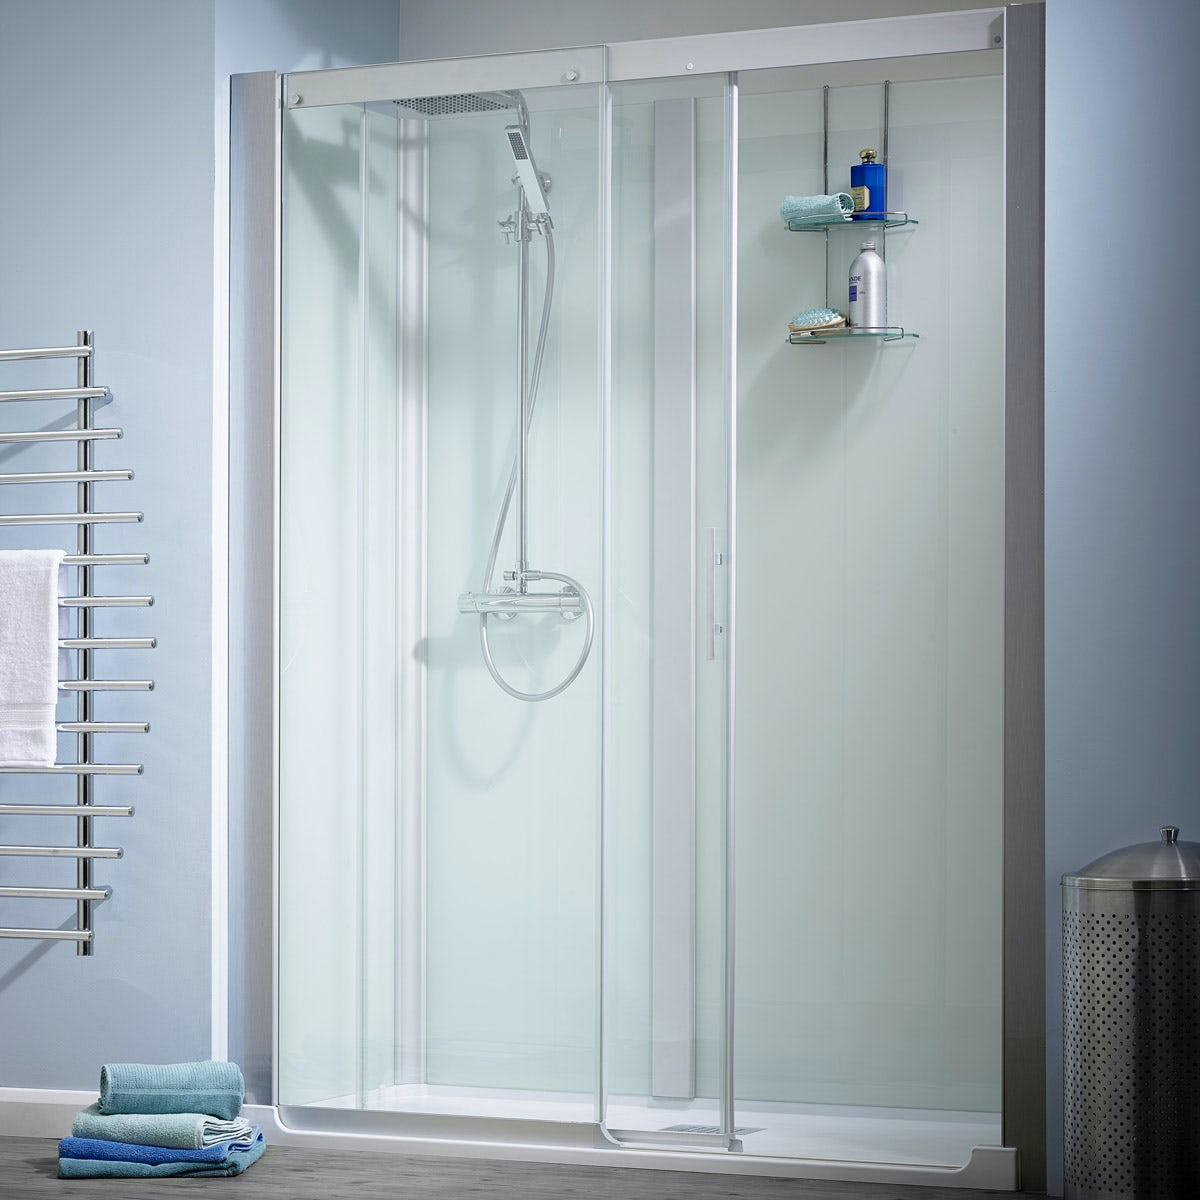 Kinemagic Design easy install bath replacement recessed shower cabin